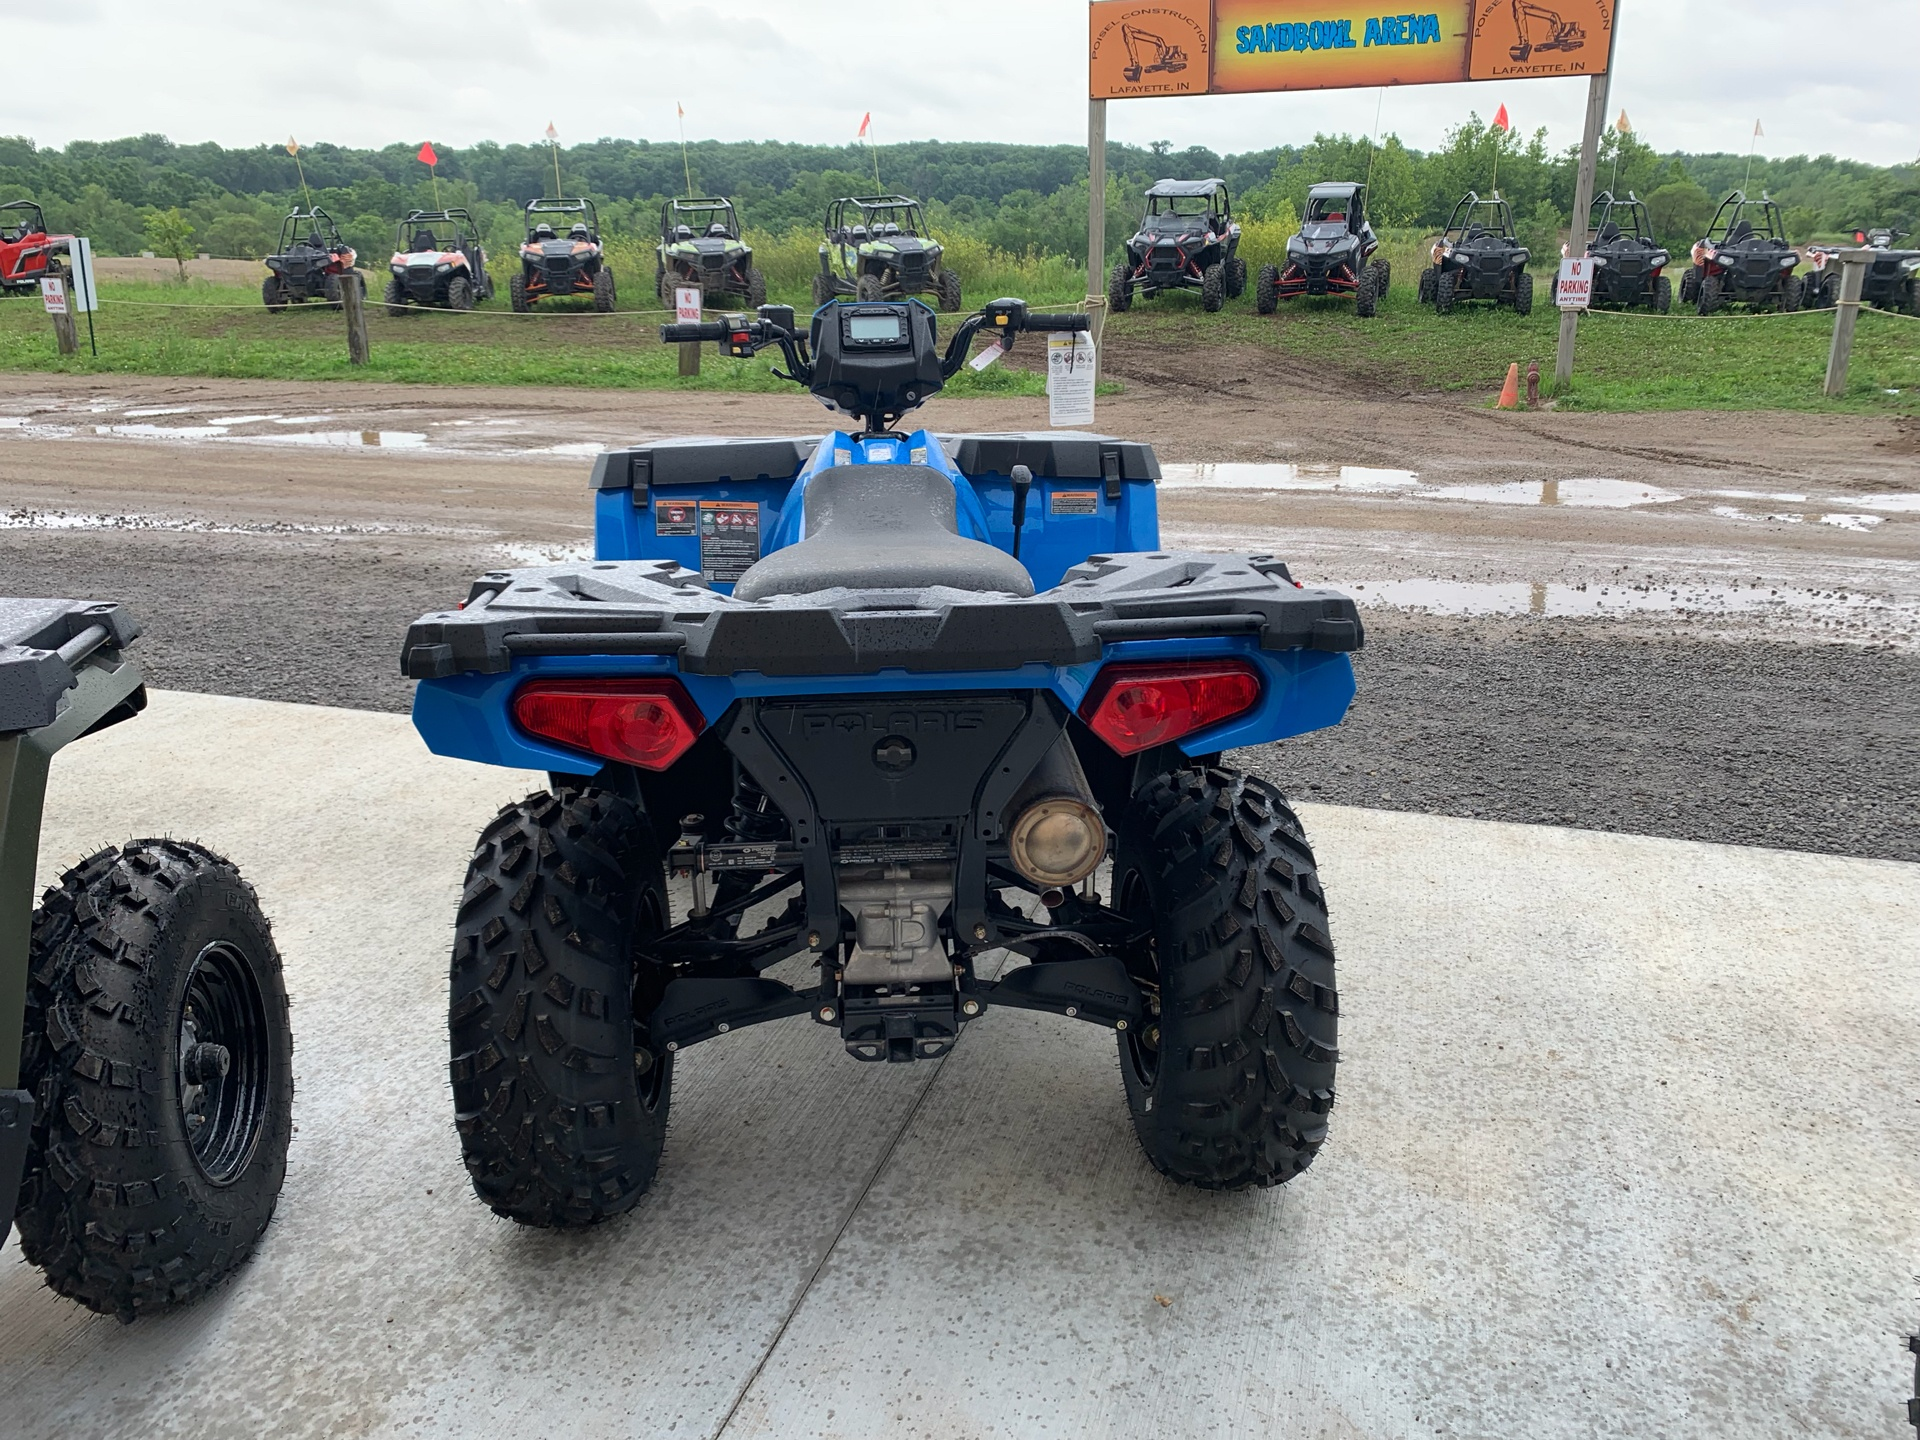 2019 Polaris Sportsman 570 EPS in Attica, Indiana - Photo 3